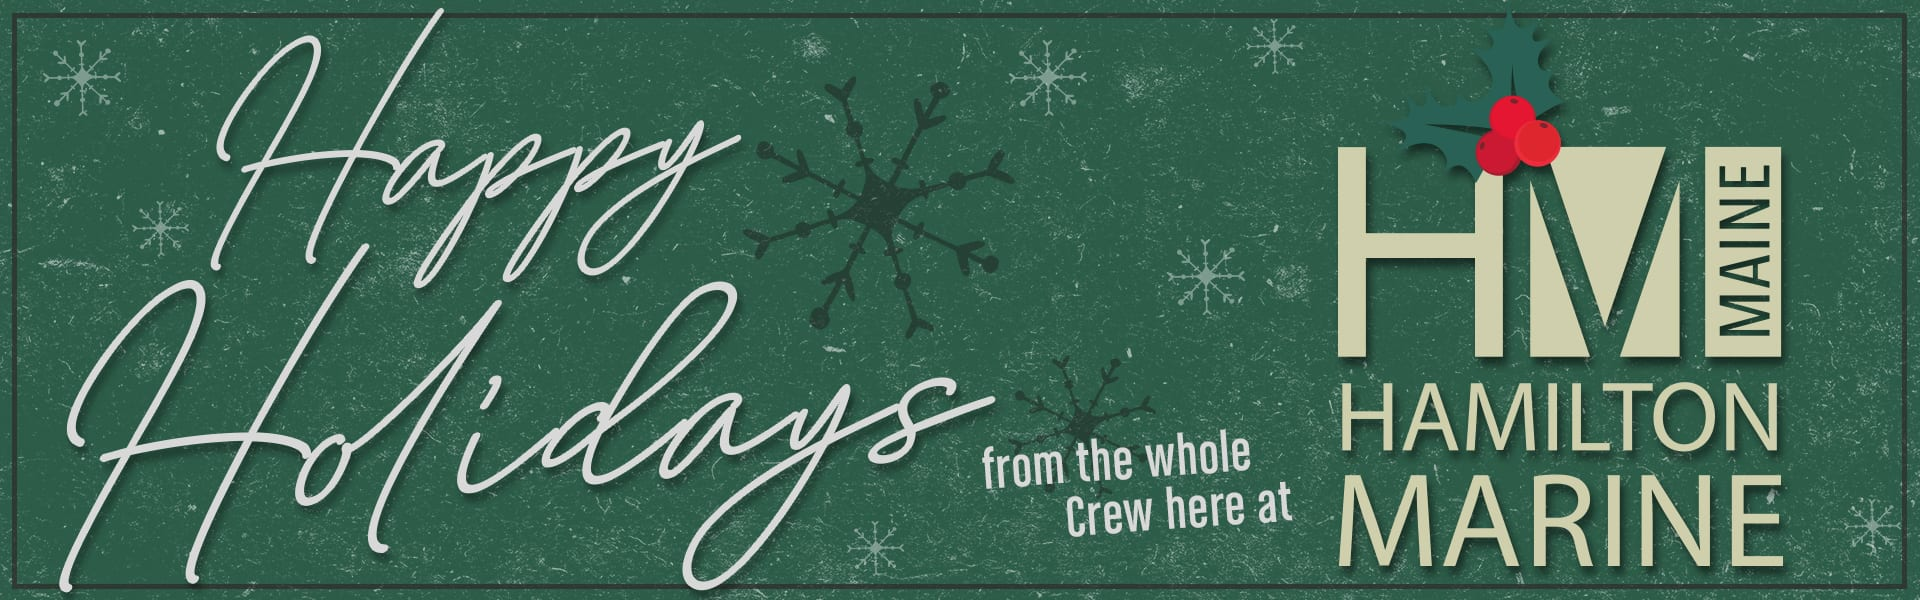 Happy Holidays from HM